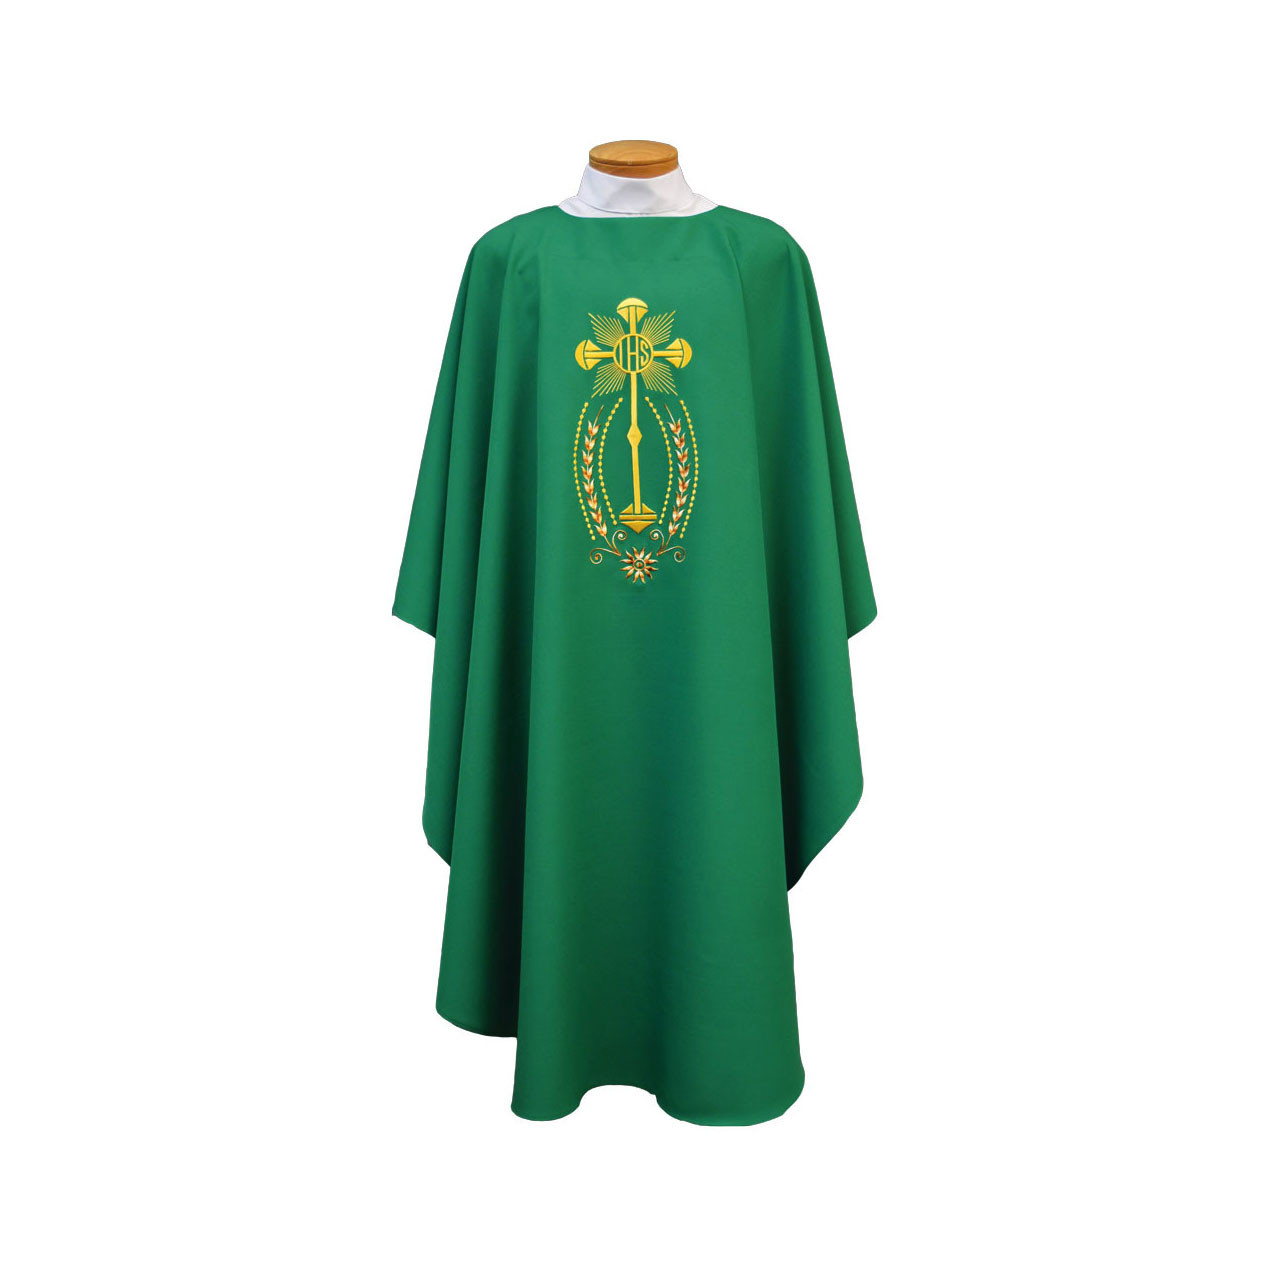 846 Chasuble w/Embroidered Monstrance and IHS